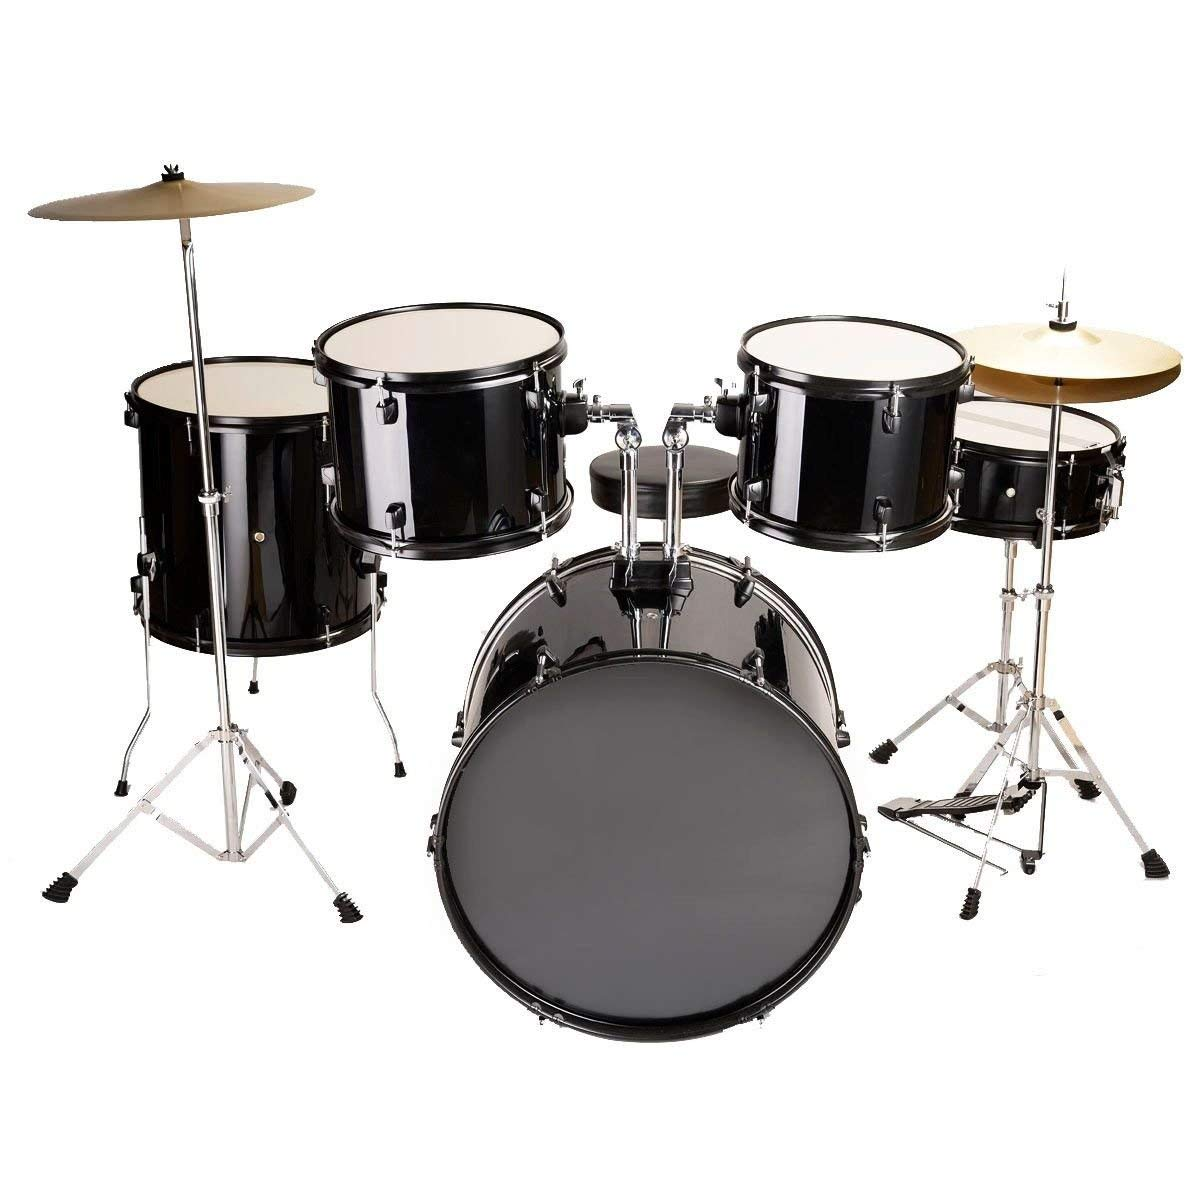 Generic O-8-O-1156-O SET CYMBALS SIZE ADULT DRUM MBALS F NEW BLACK DRUM S FULL SIZE 5 PIEC COMPLETE 5 PIECE HX-US5-16Mar28-2851